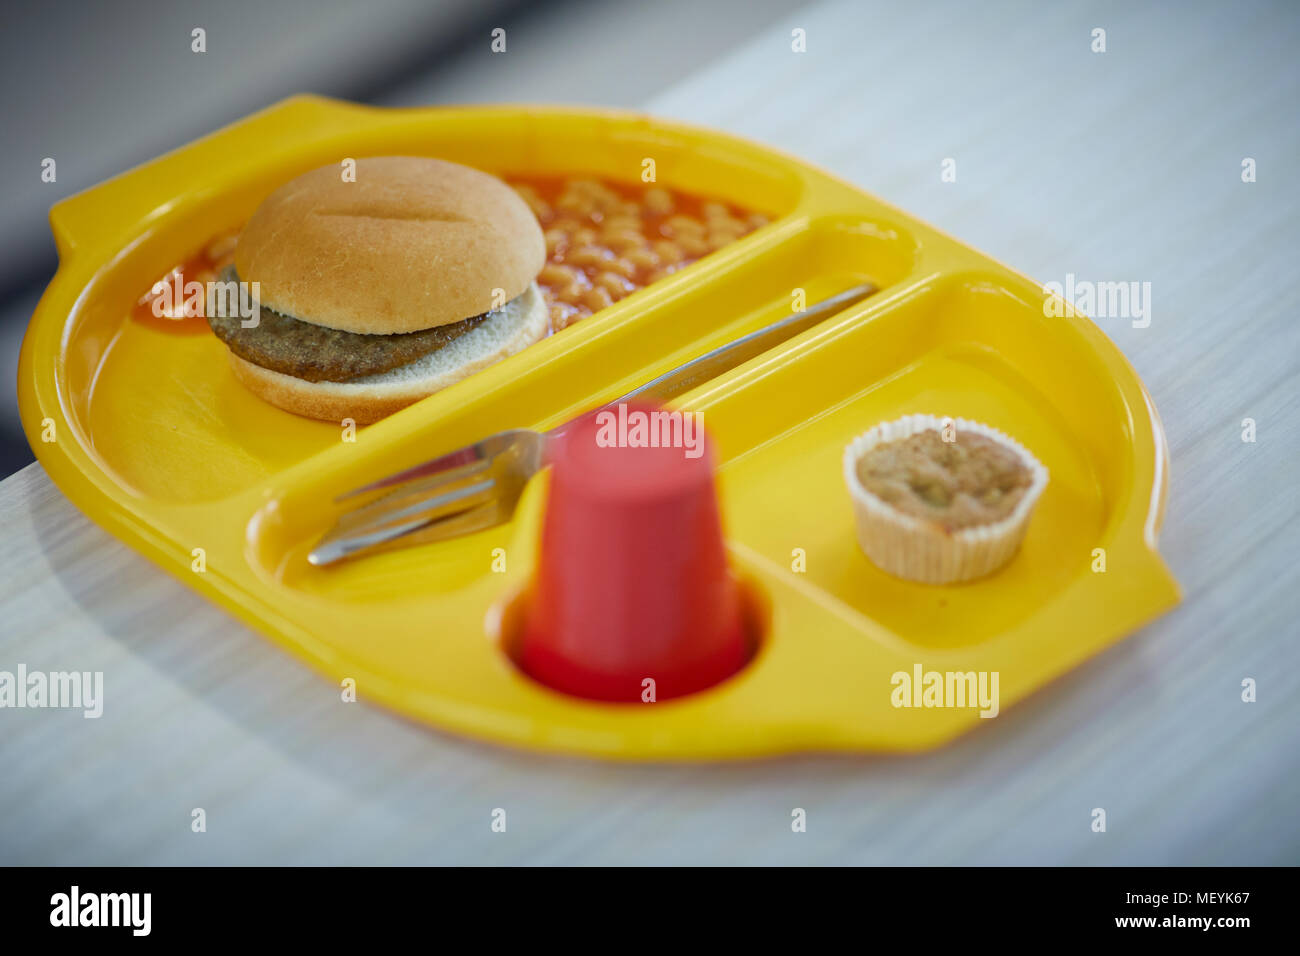 A school dinner meal tray with burger, beans, cake and drink Stock Photo